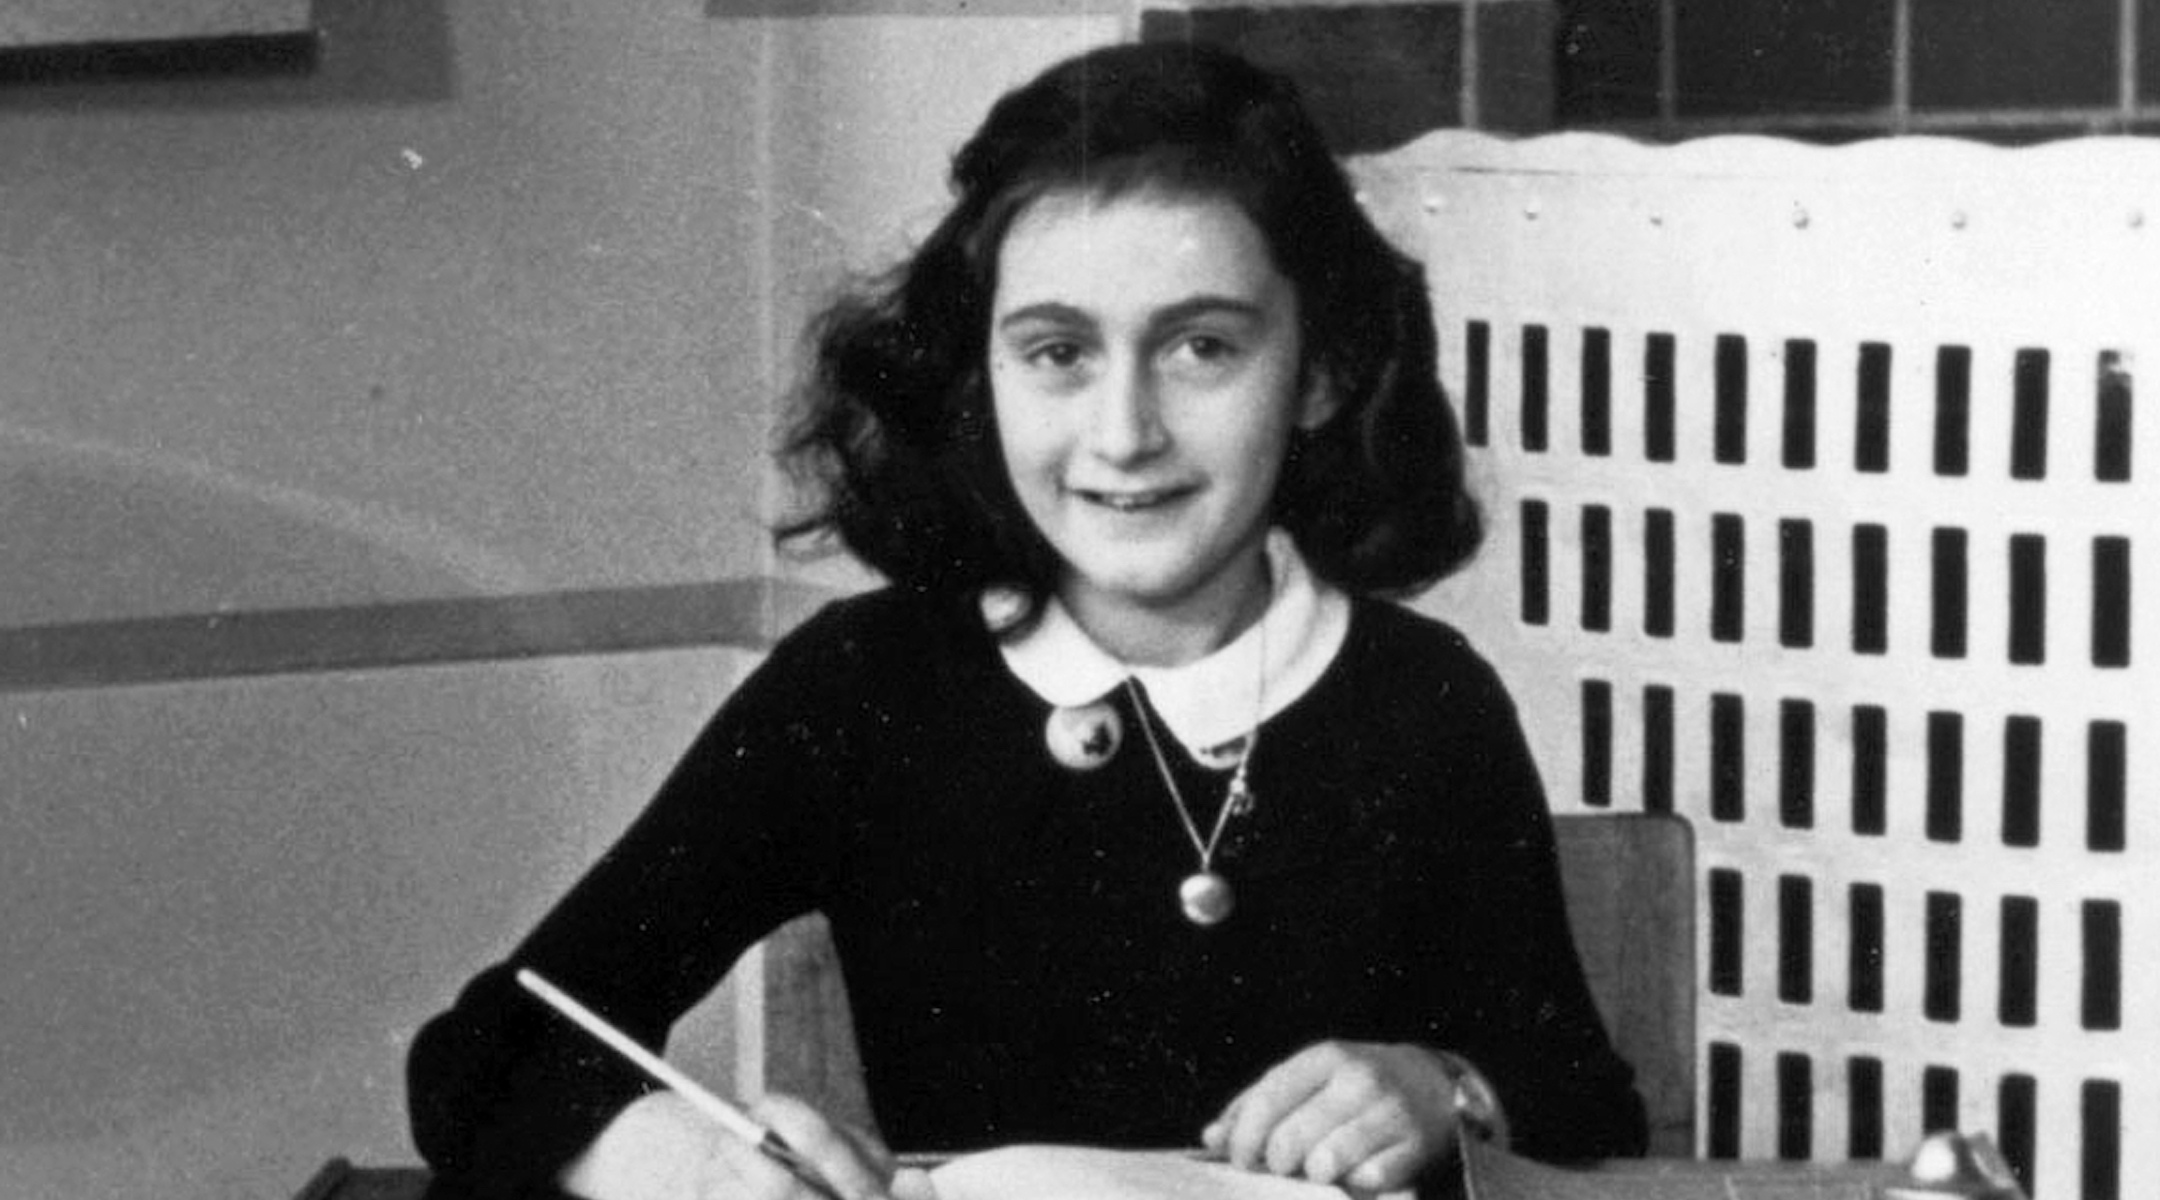 Hong Kong cosmetics maker features blush named for Anne Frank